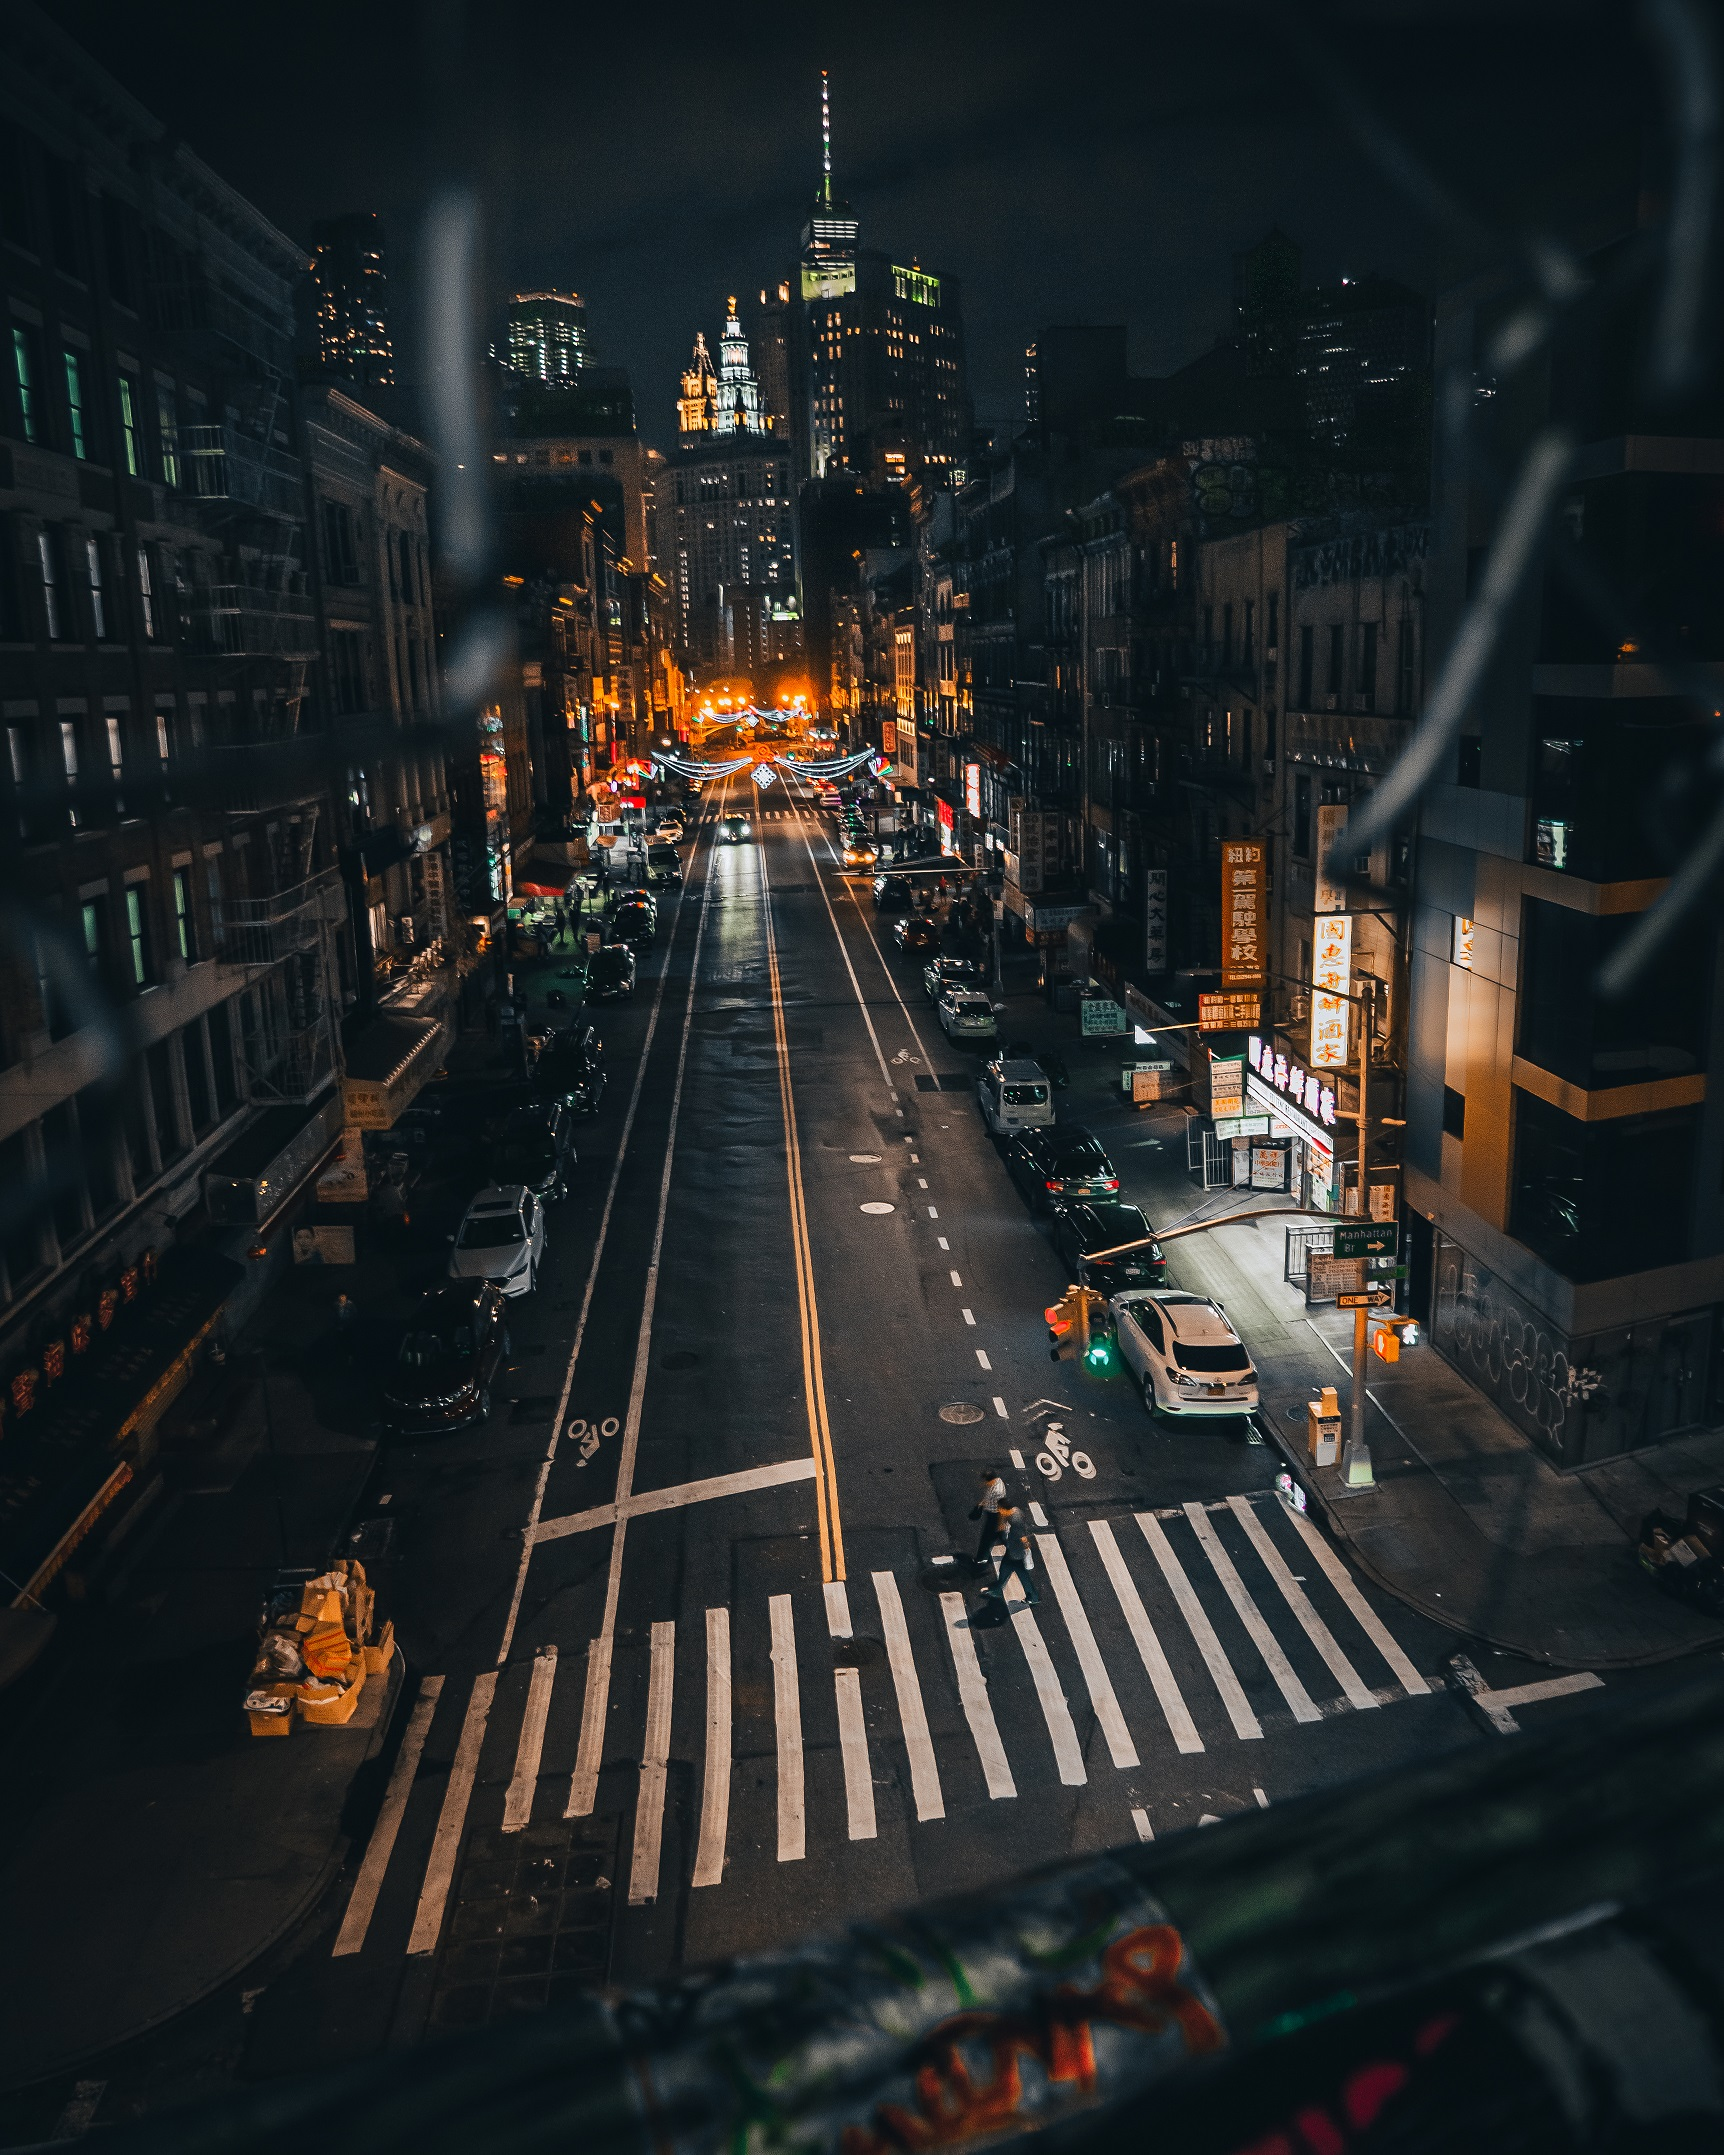 Overlooking a street in Chinatown at night in New York City